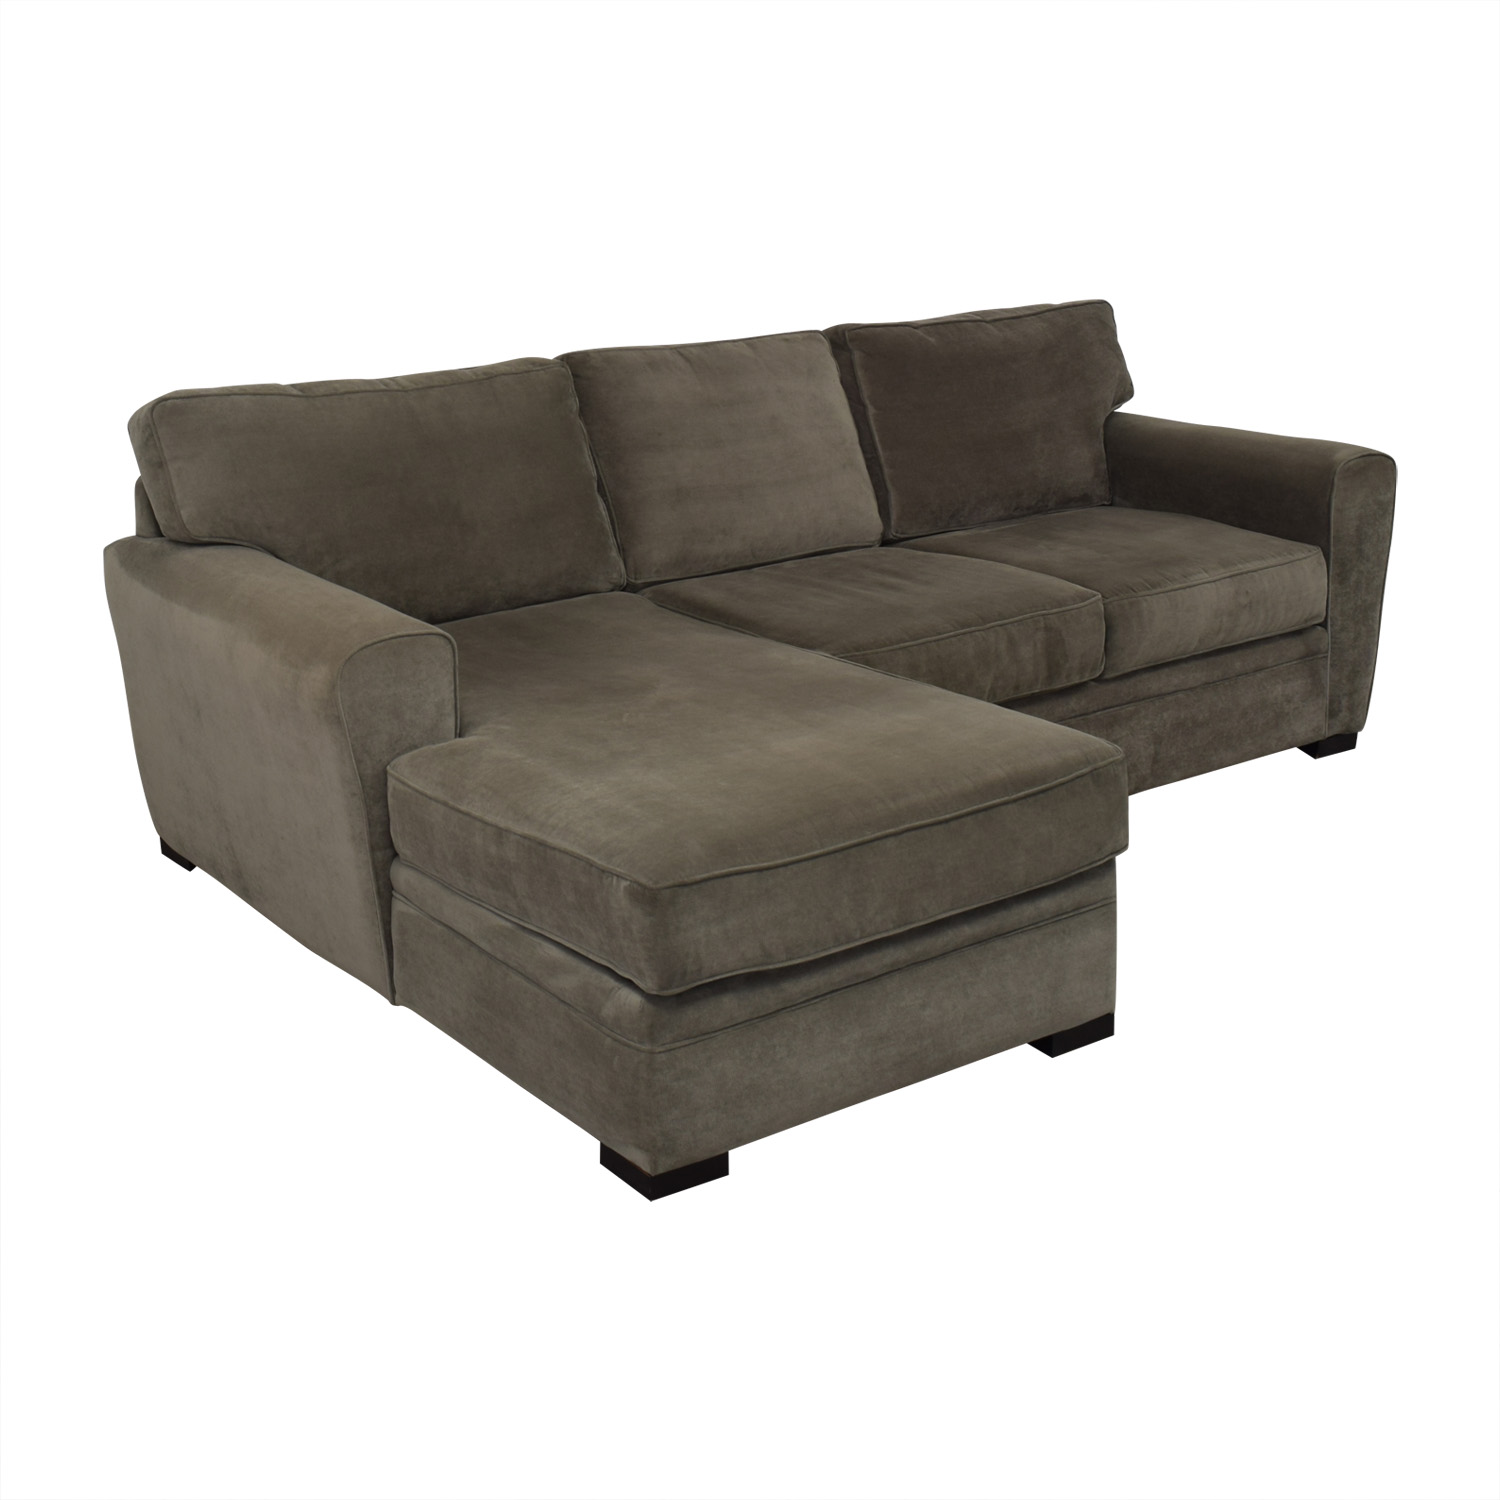 Jonathan Louis Sectional Sofa with Chaise sale